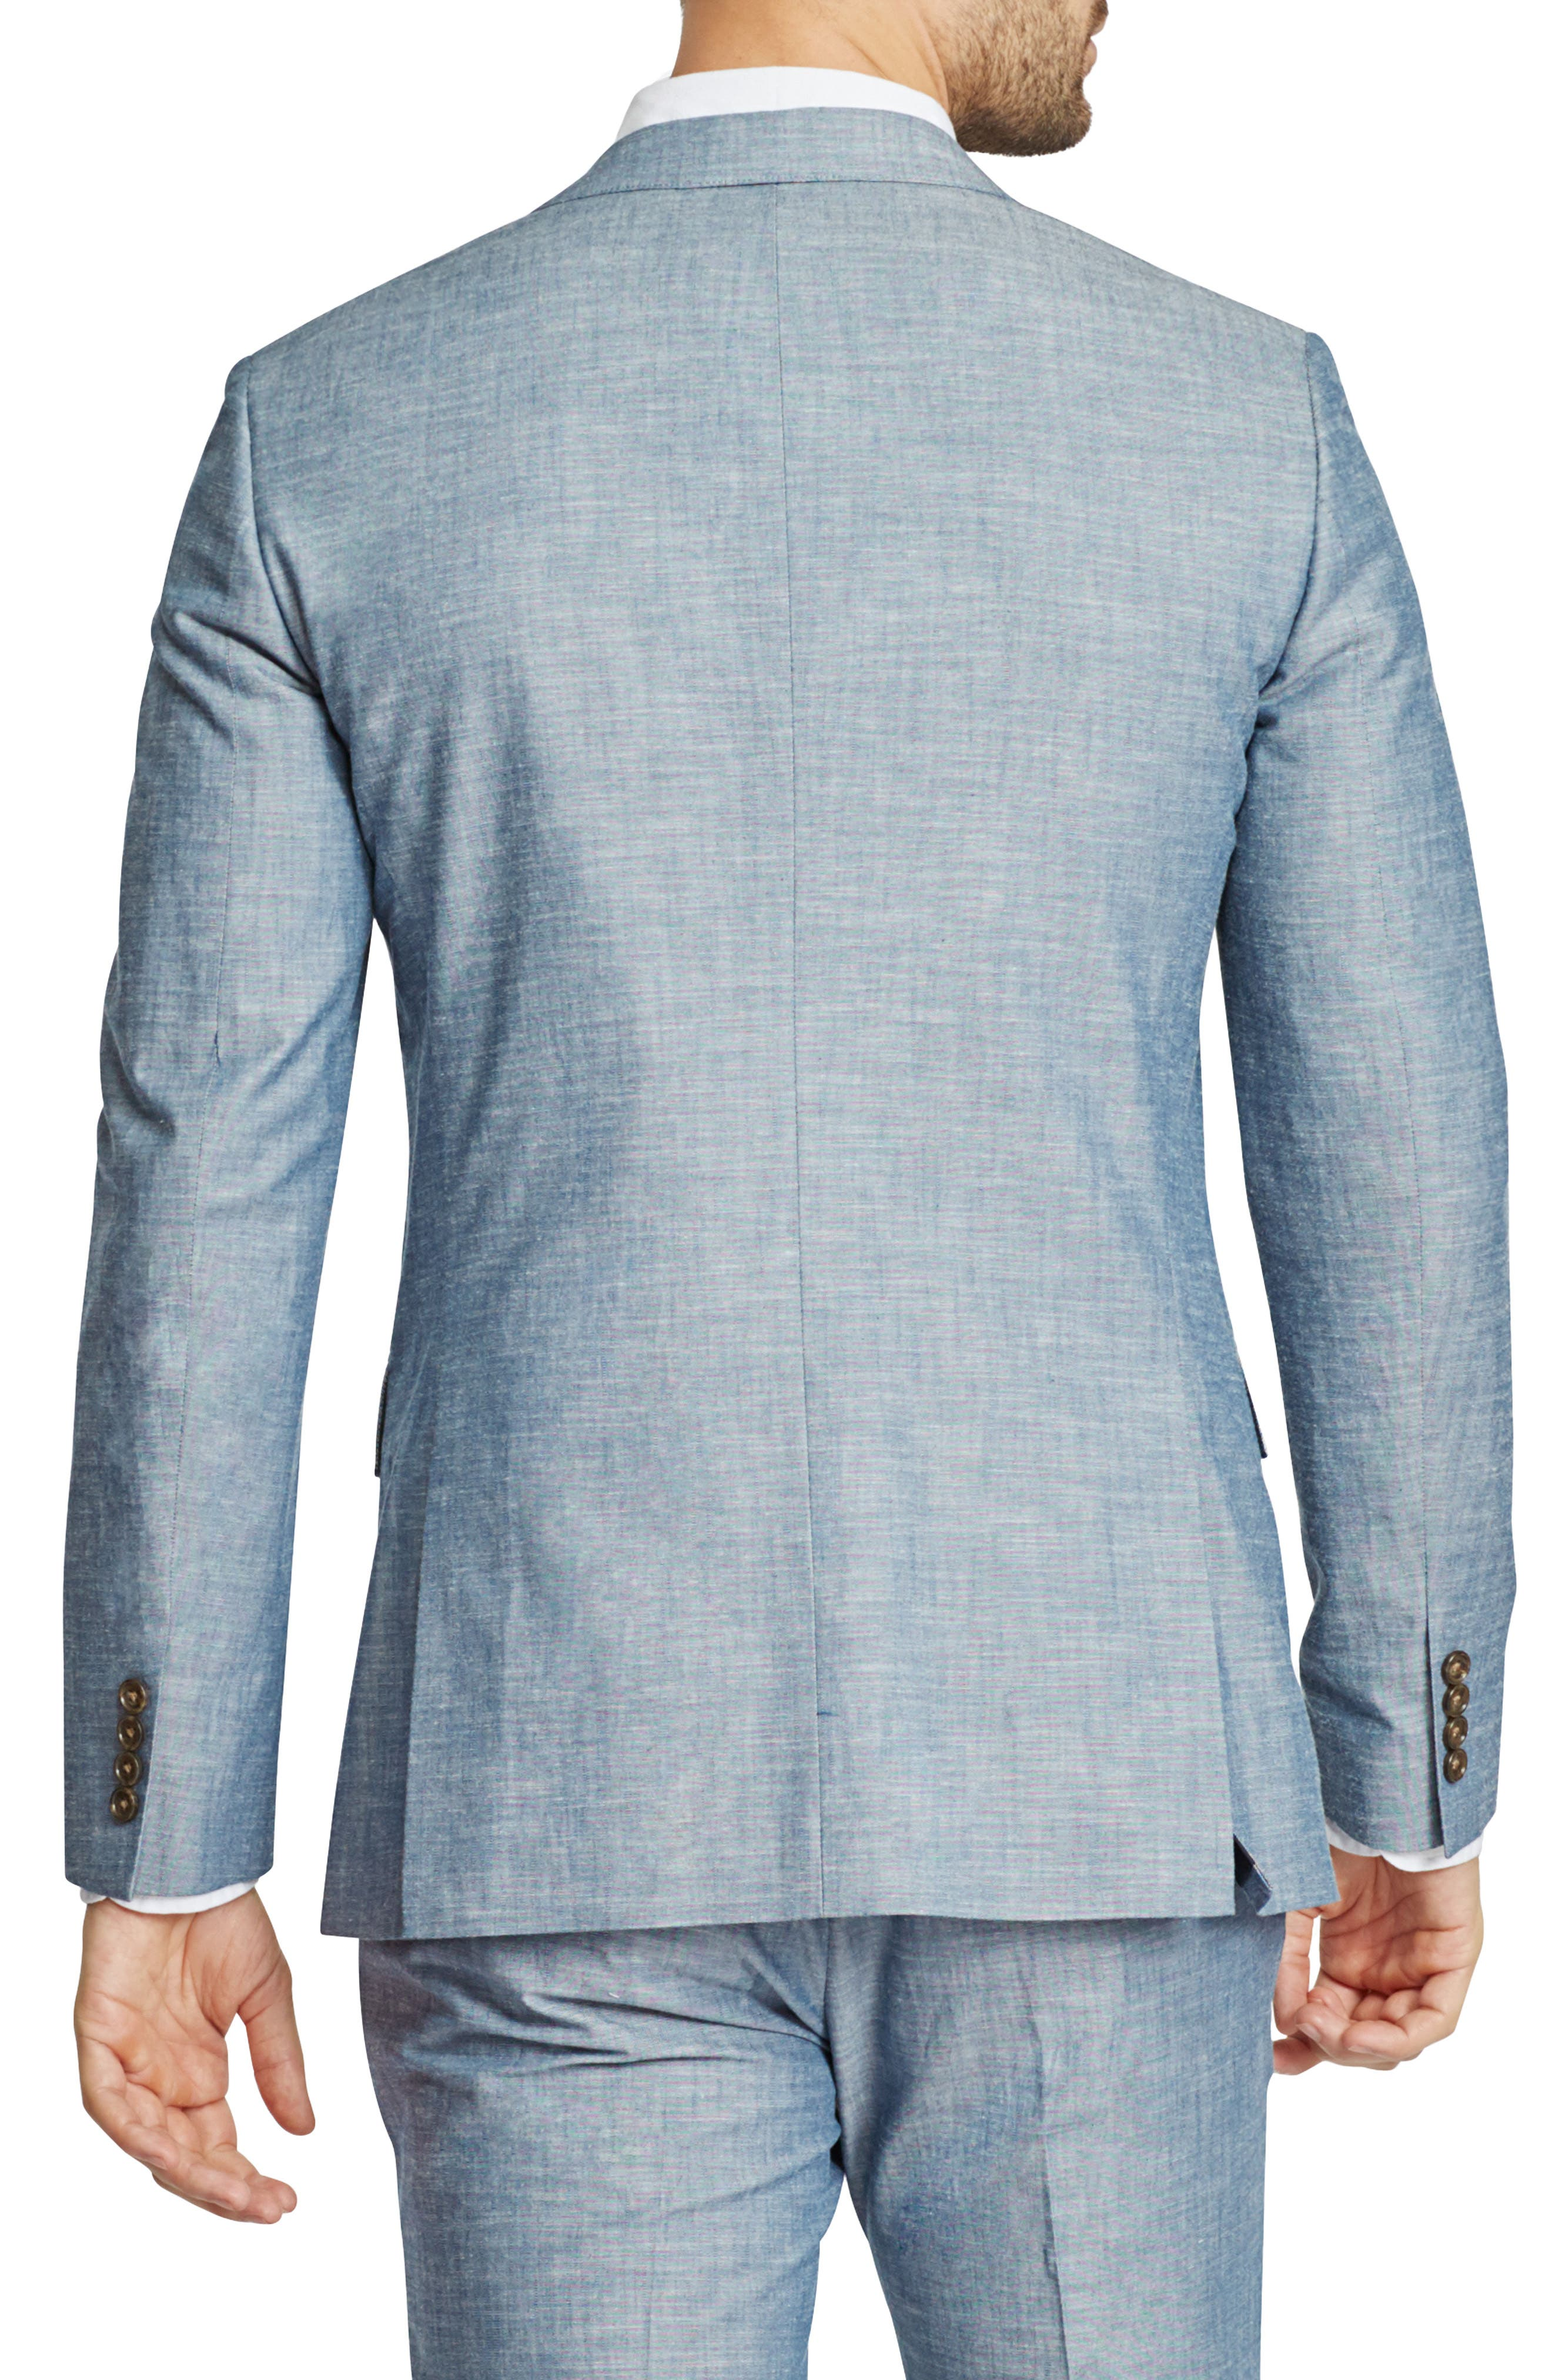 Trim Fit Chambray Cotton Blazer,                             Alternate thumbnail 2, color,                             Solid Blue